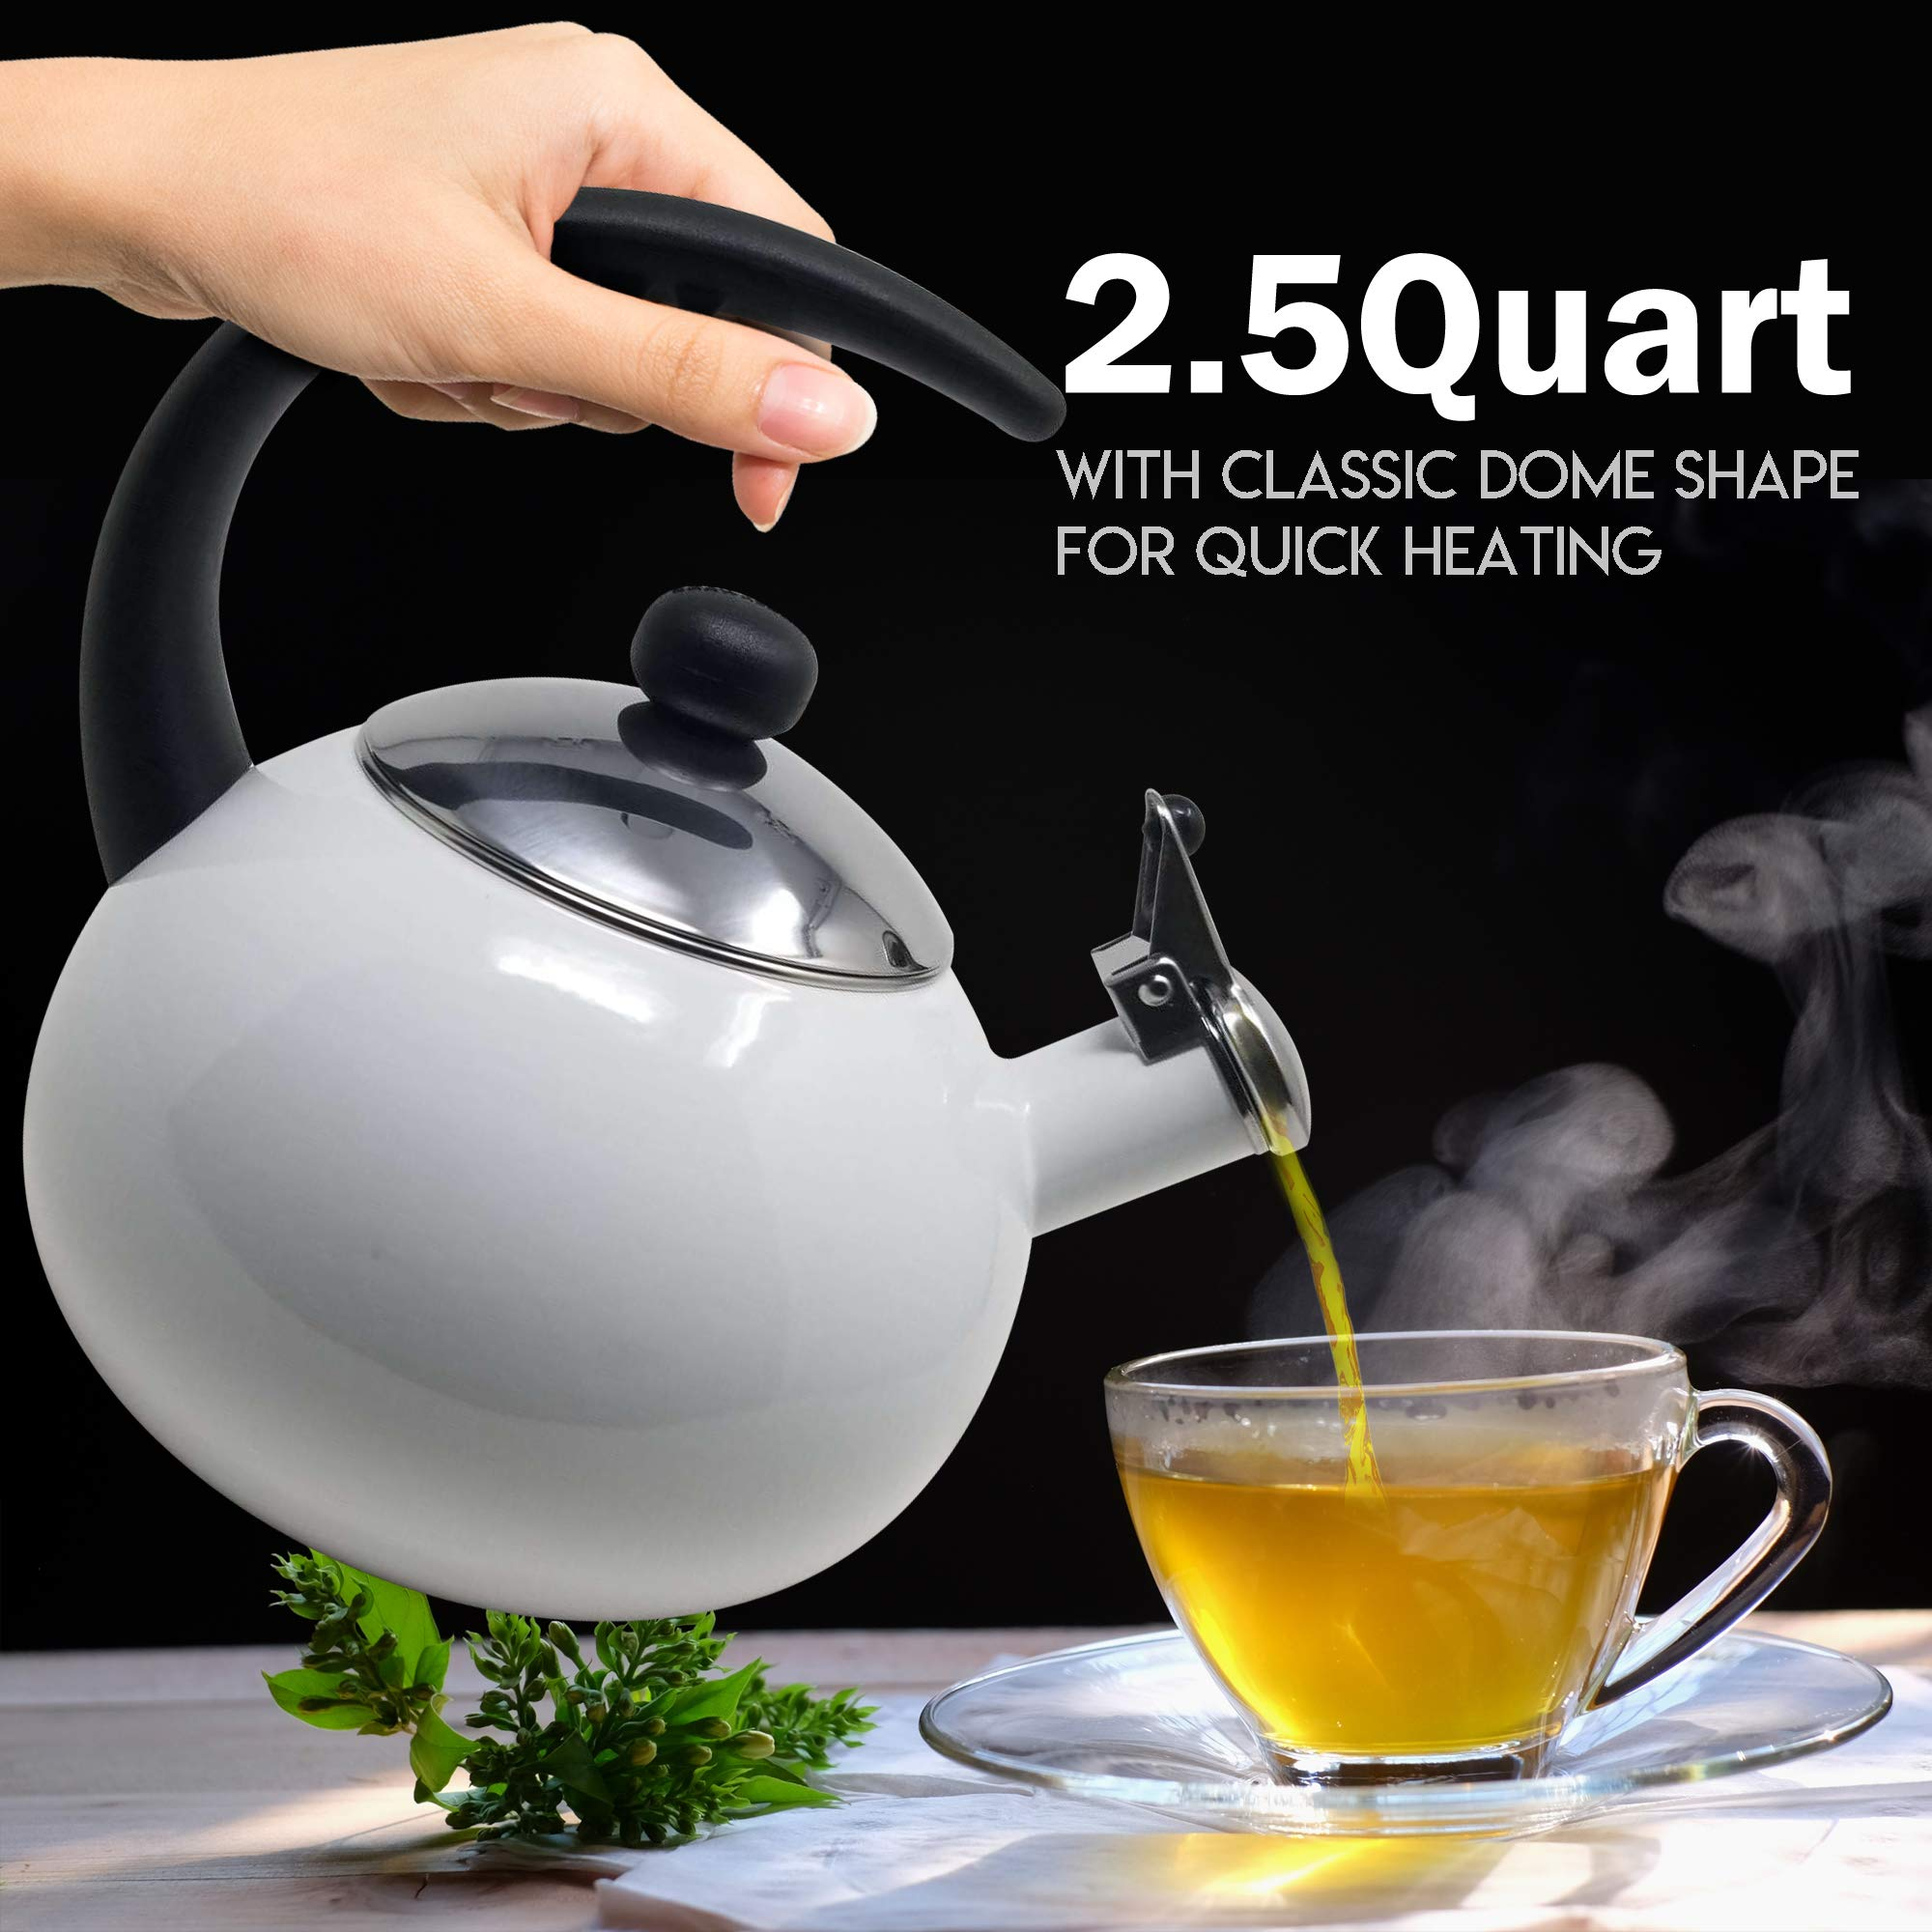 Farberware Luna White Porcelain Enameled Food Grade 18/8 Stainless Steel Soft Whistle Anti- Hot and Anti-Rust TEA KETTLE with Soft Grip Handle Flip Up Spout Heavy Gauge STOVETOP POT 2 QT. by Alfay (Image #5)